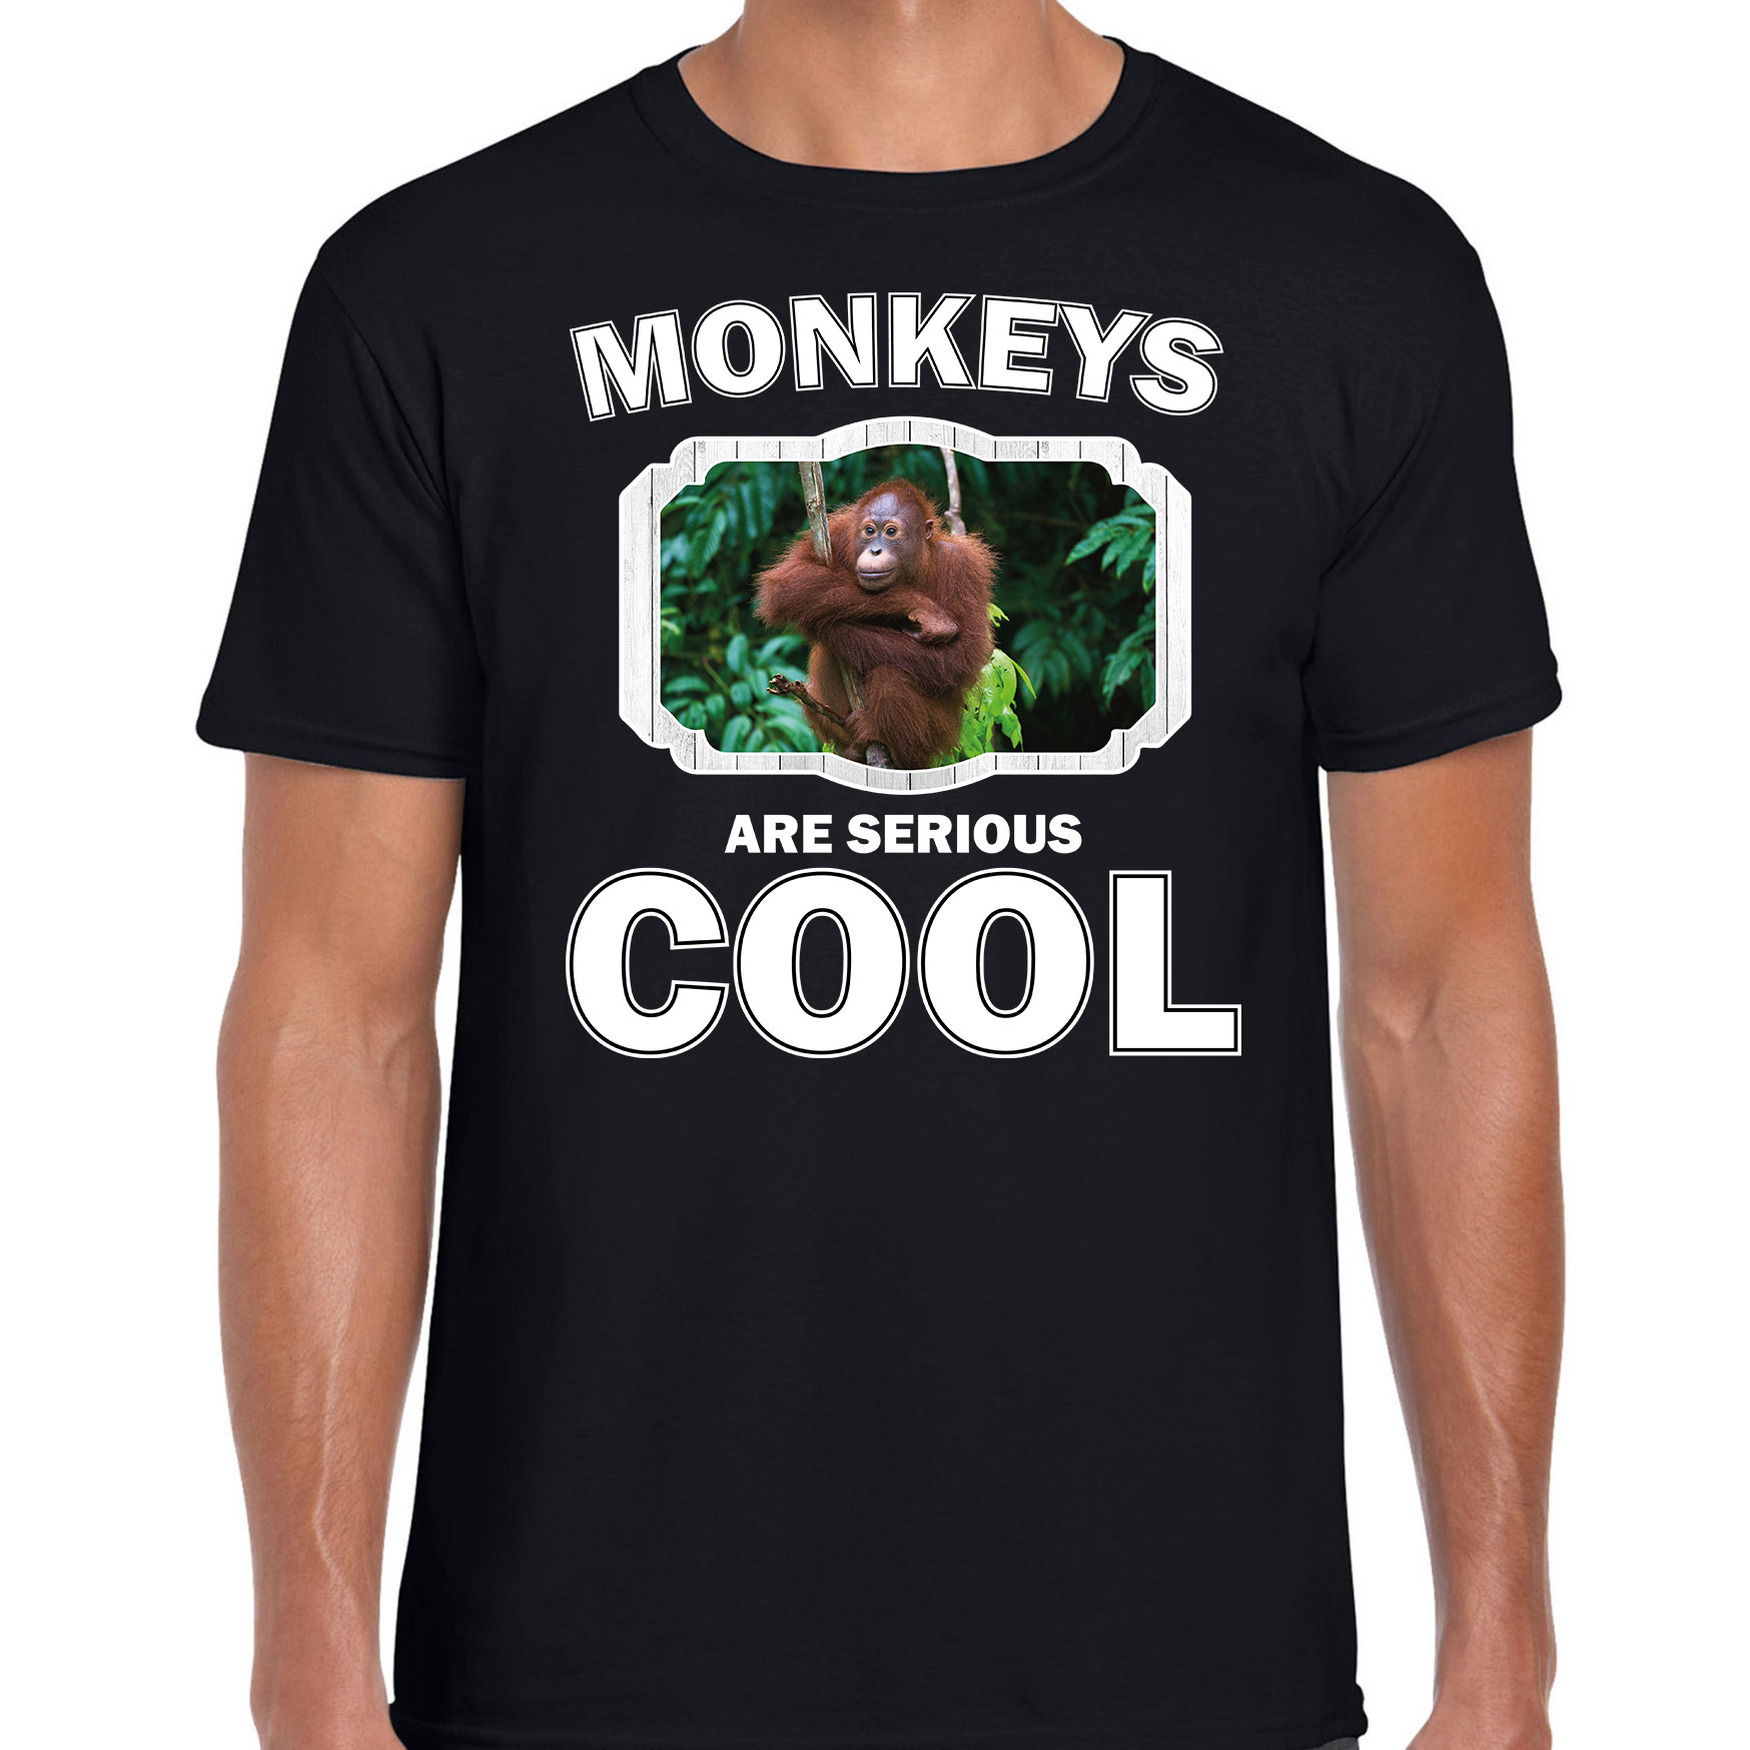 T-shirt monkeys are serious cool zwart heren - Apen/ orangoetan shirt